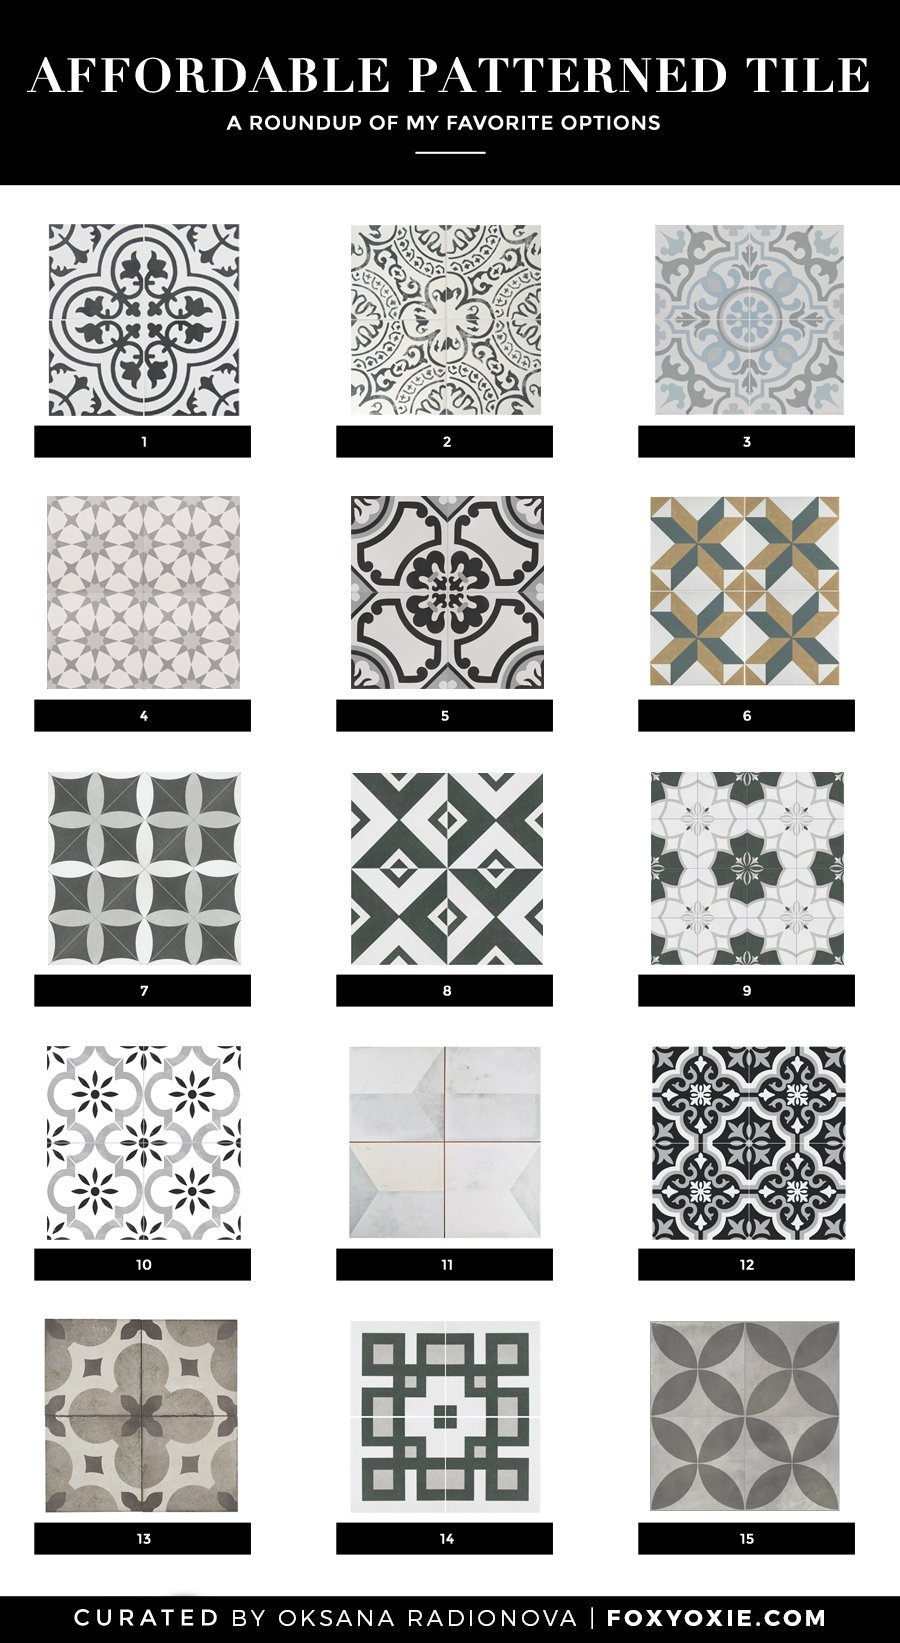 Roundup: My Favorite Affordable Patterned Tile Options